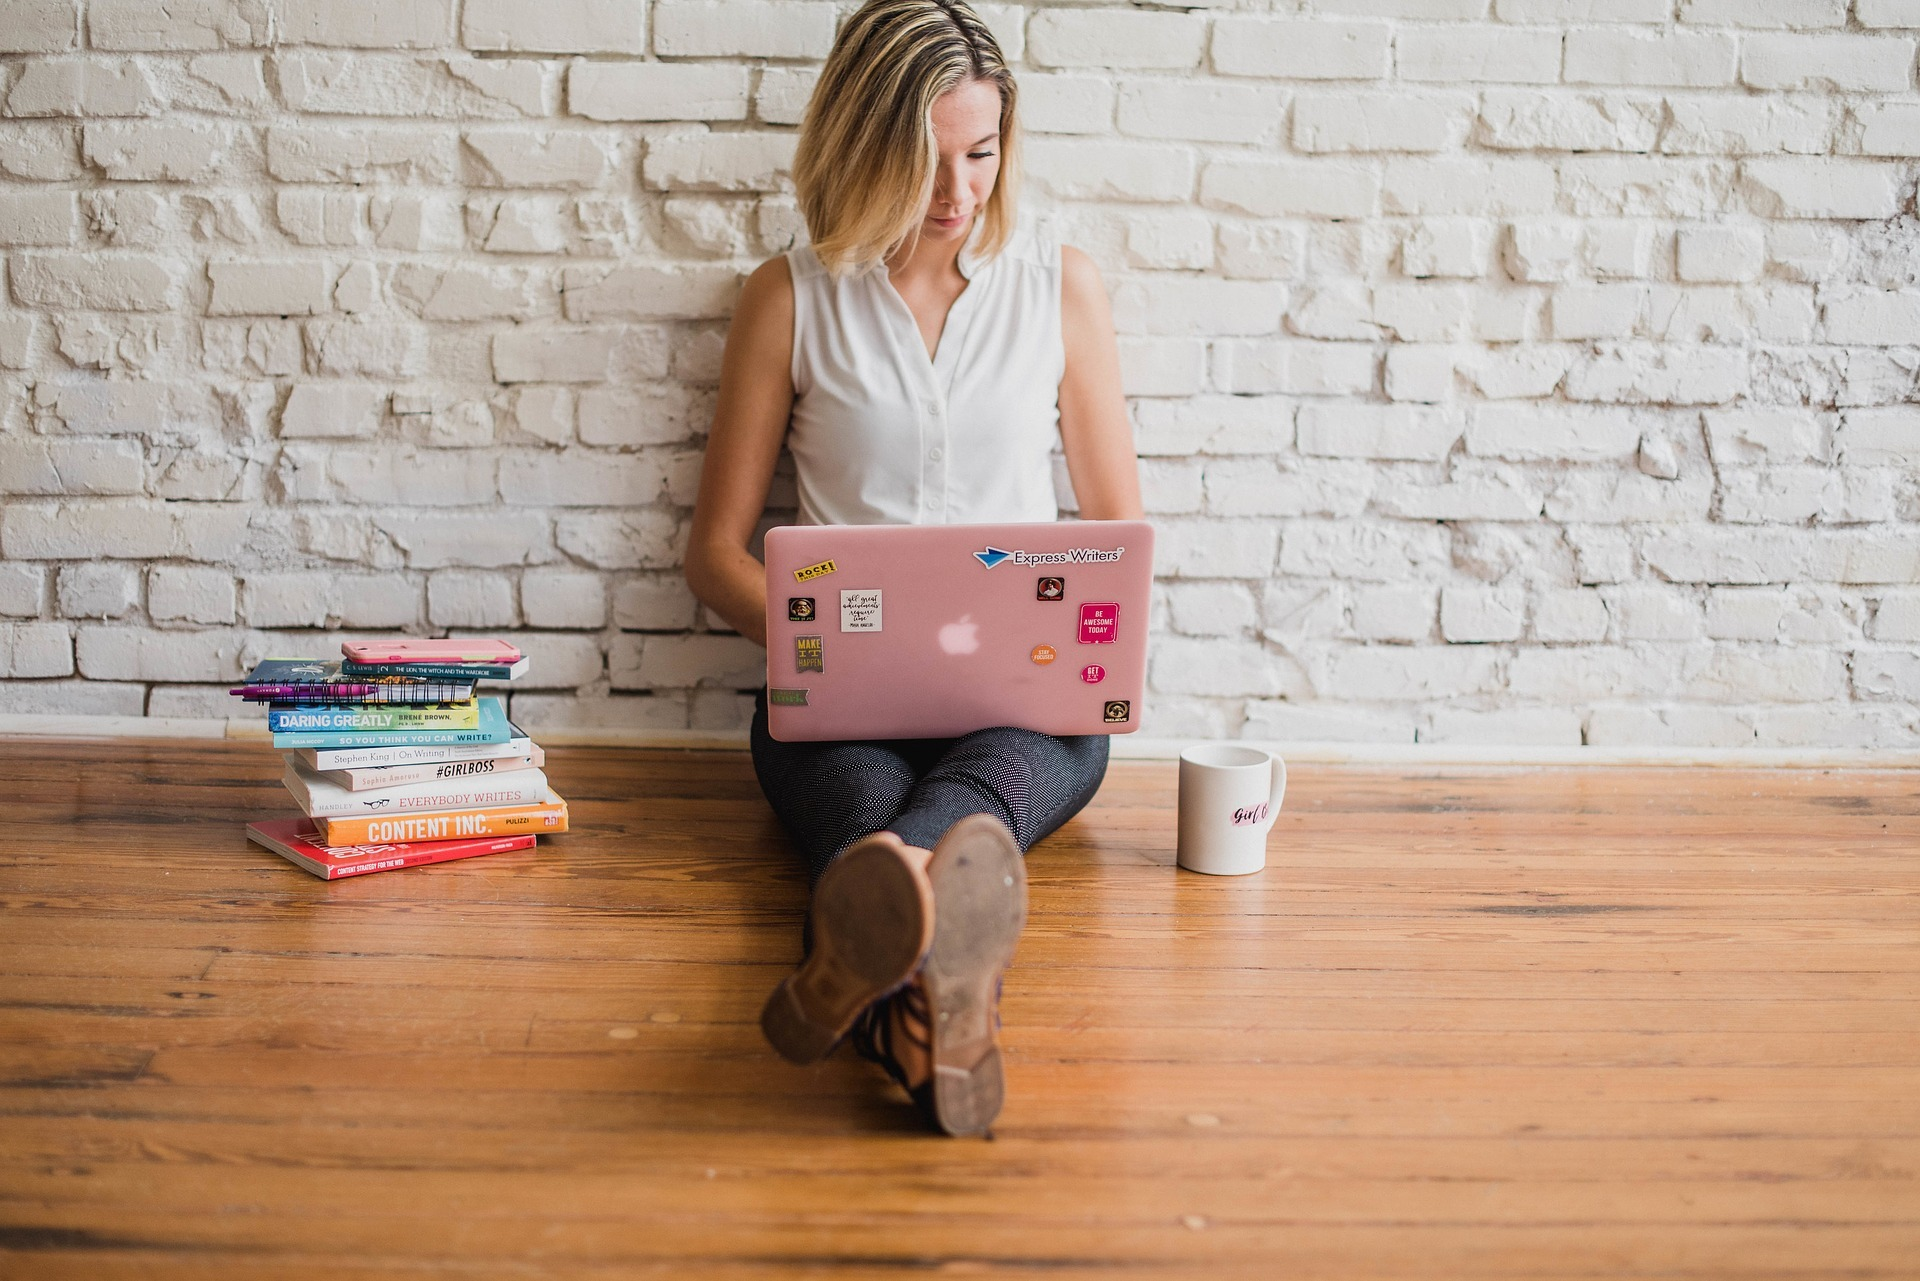 Woman sitting on a hardwood floor. She is using a Macbook with decorative stickers on the cover. To her right is a bile of books and to her left is a coffee mug.